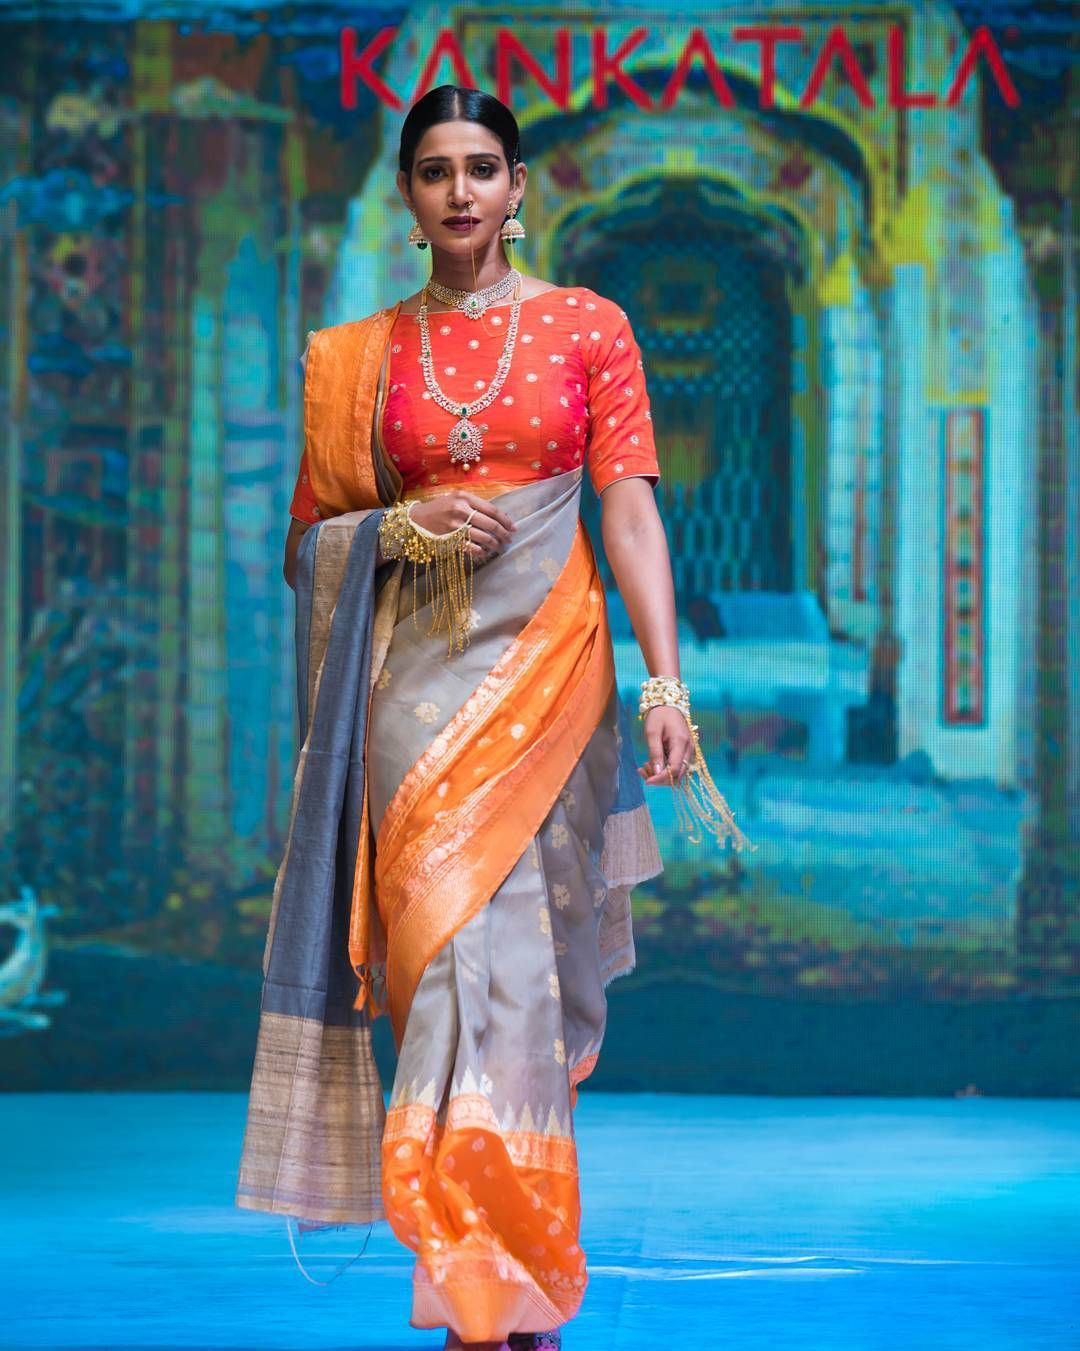 2e13a1f572 Front drape Check Out Trendy Silk Saree Designs From Kankatala • Keep Me  Stylish